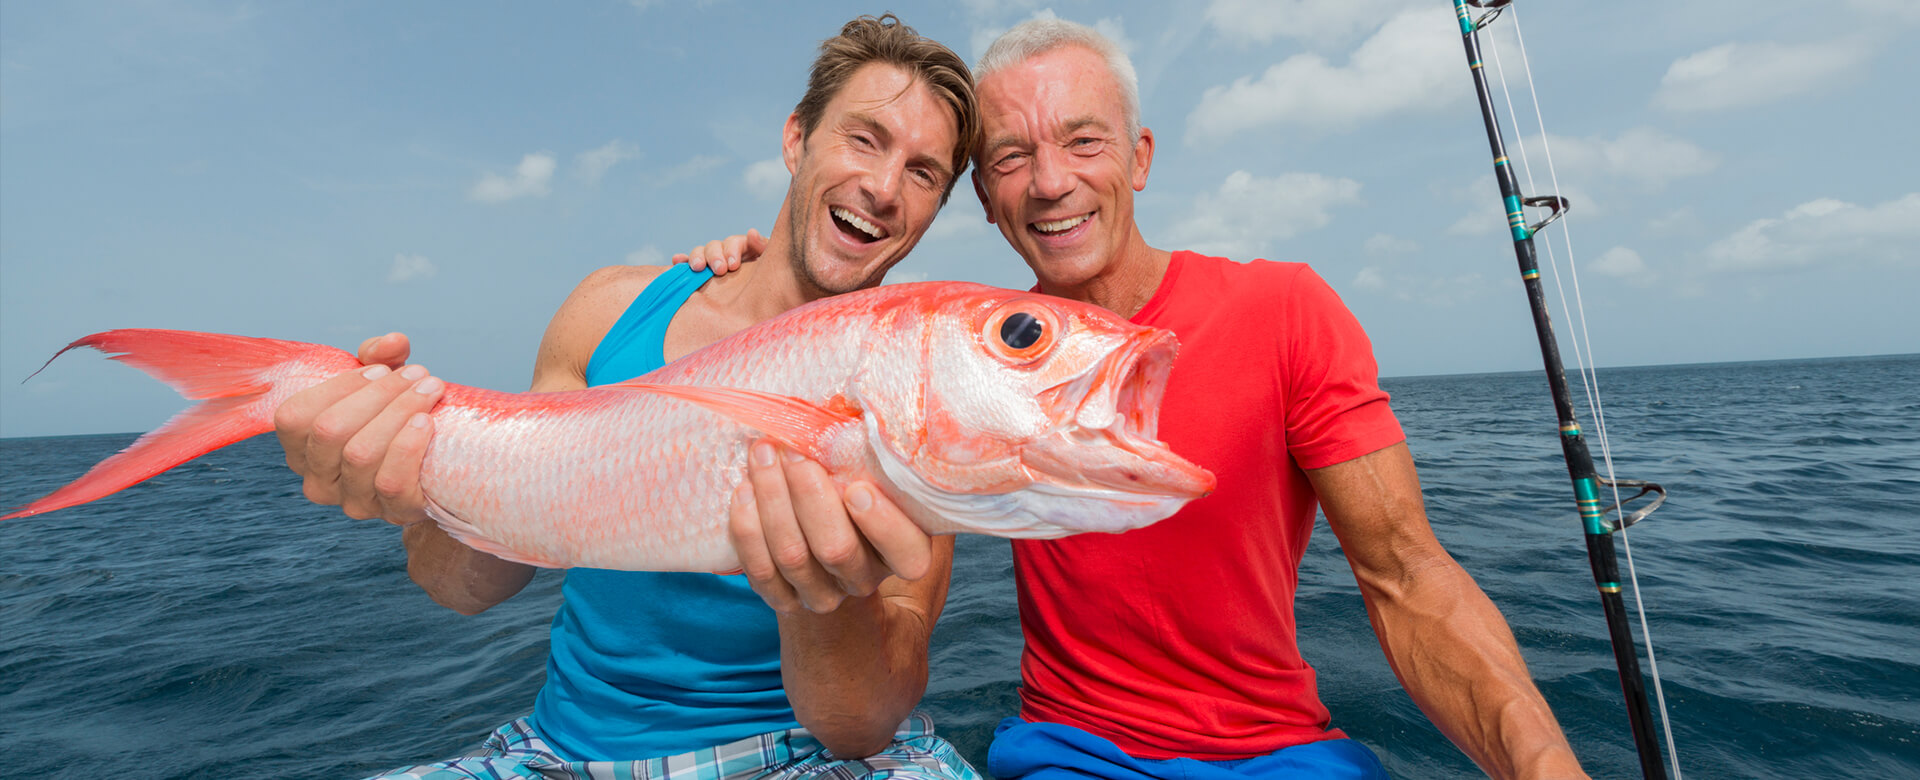 men posing with a fish in naples